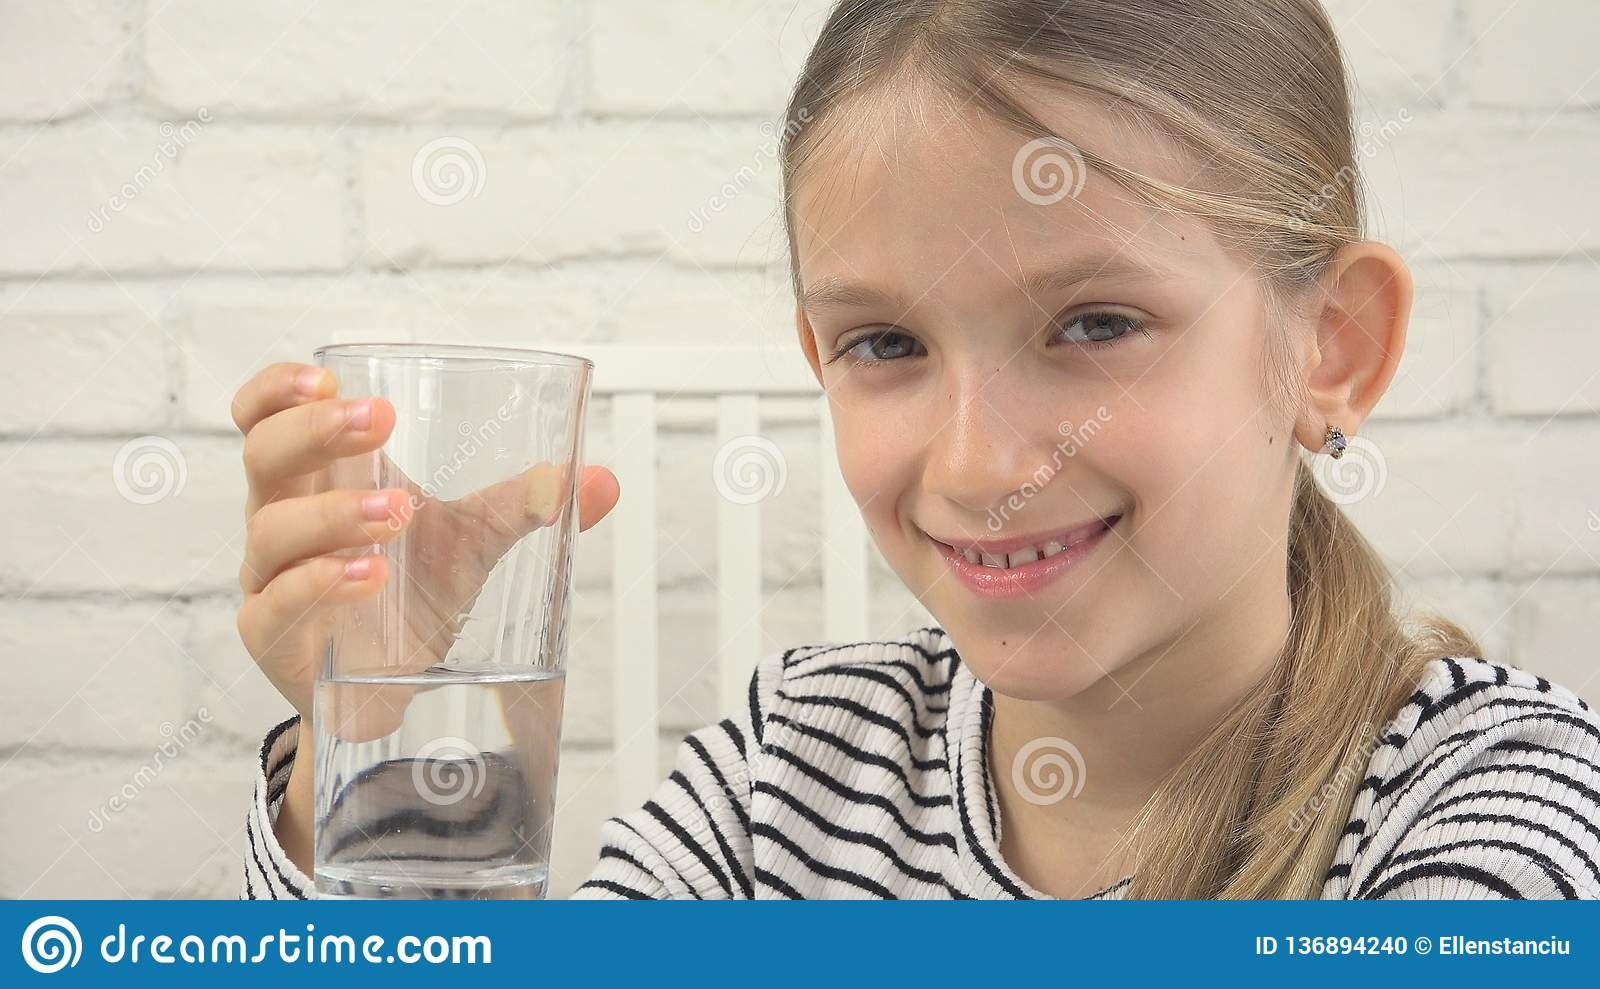 Child Drinking Water, Thirsty Kid Studying Glass of Fresh Water, Girl in Kitchen